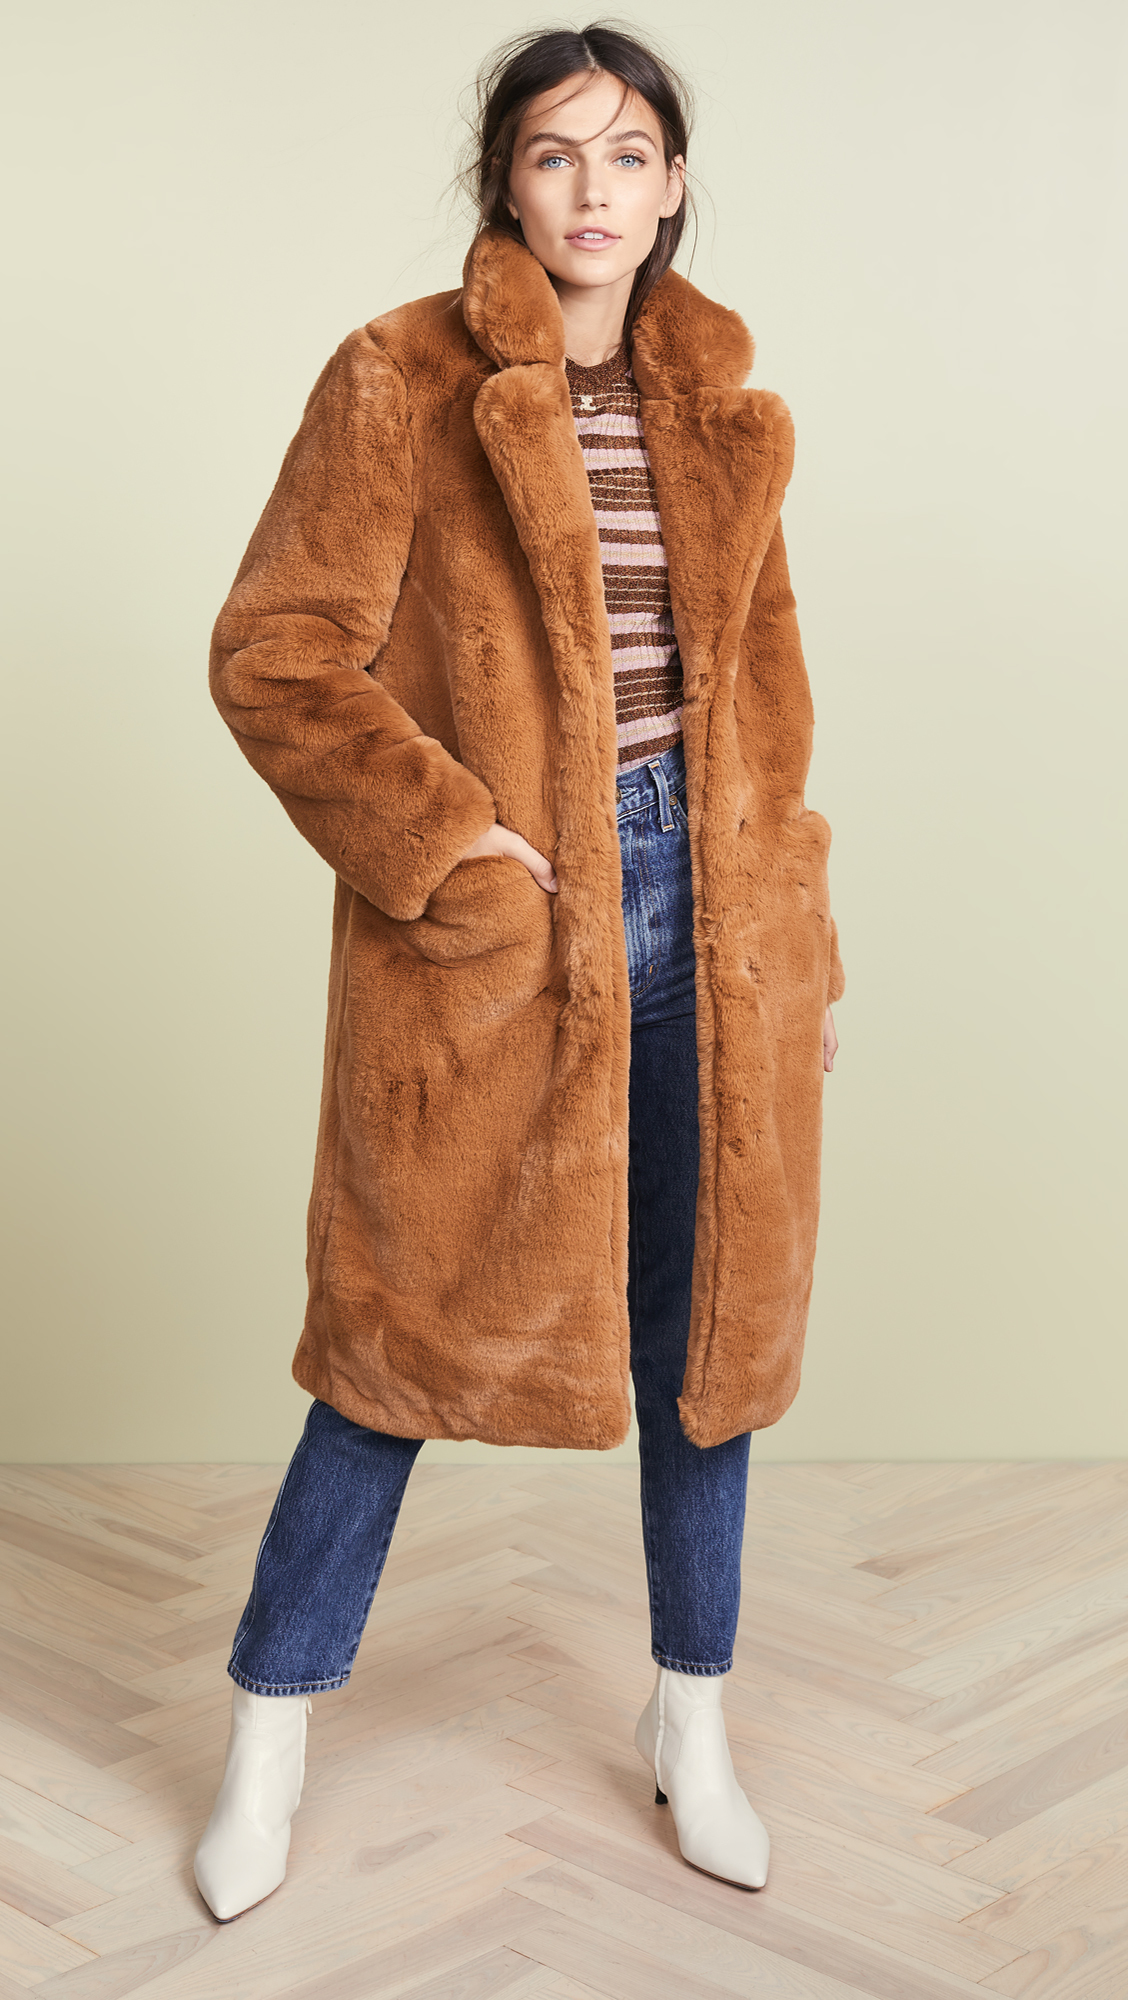 837b397de06b 10 Faux Fur Jackets for Chilly Weather